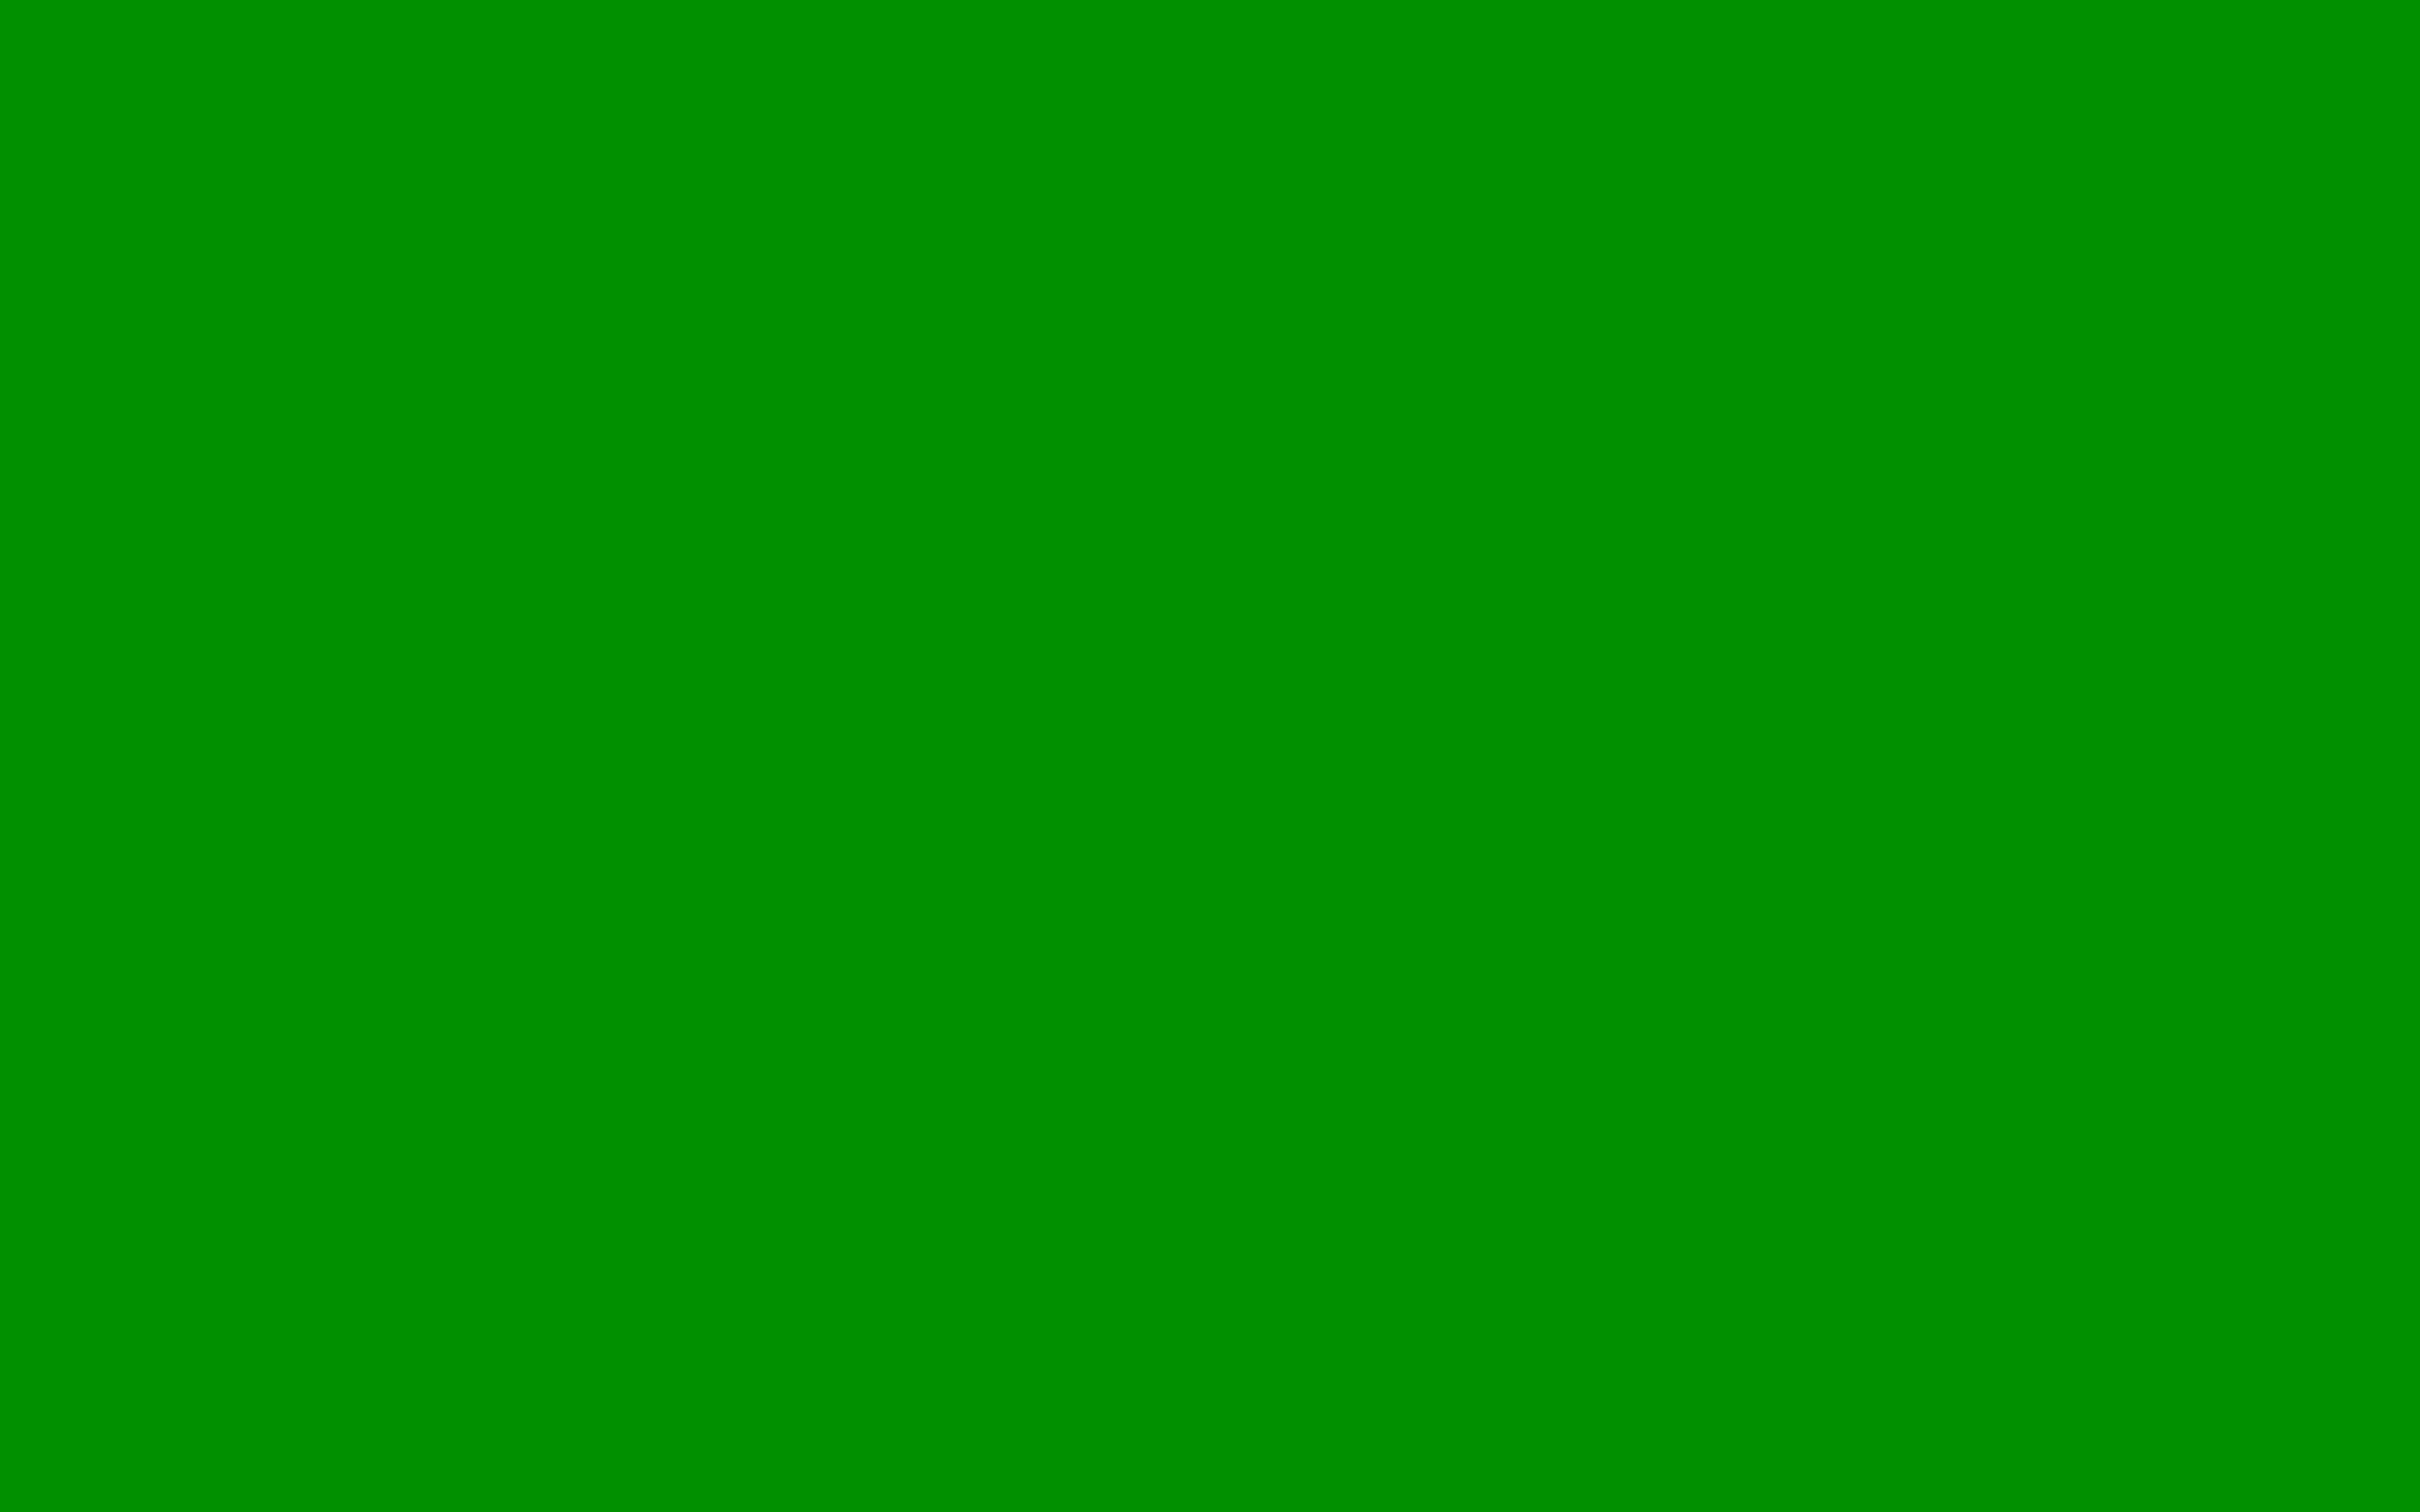 image Solid Green Color PC Android iPhone and iPad Wallpapers 2560x1600